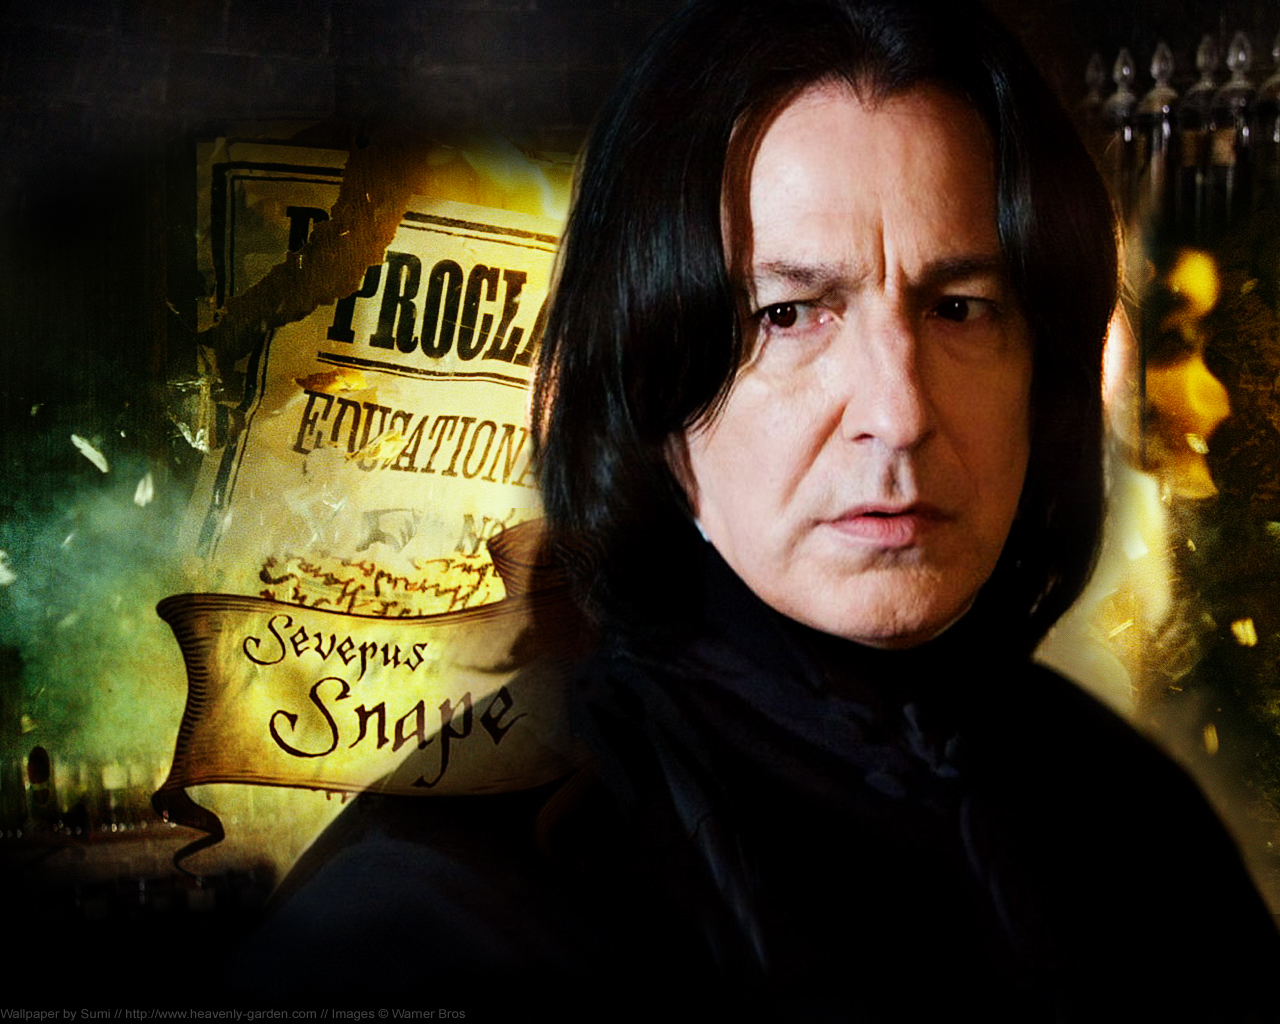 Harry Potter It Gets Better, Severus Snape LGBT, Severus Snape gay, Harry Potter gay